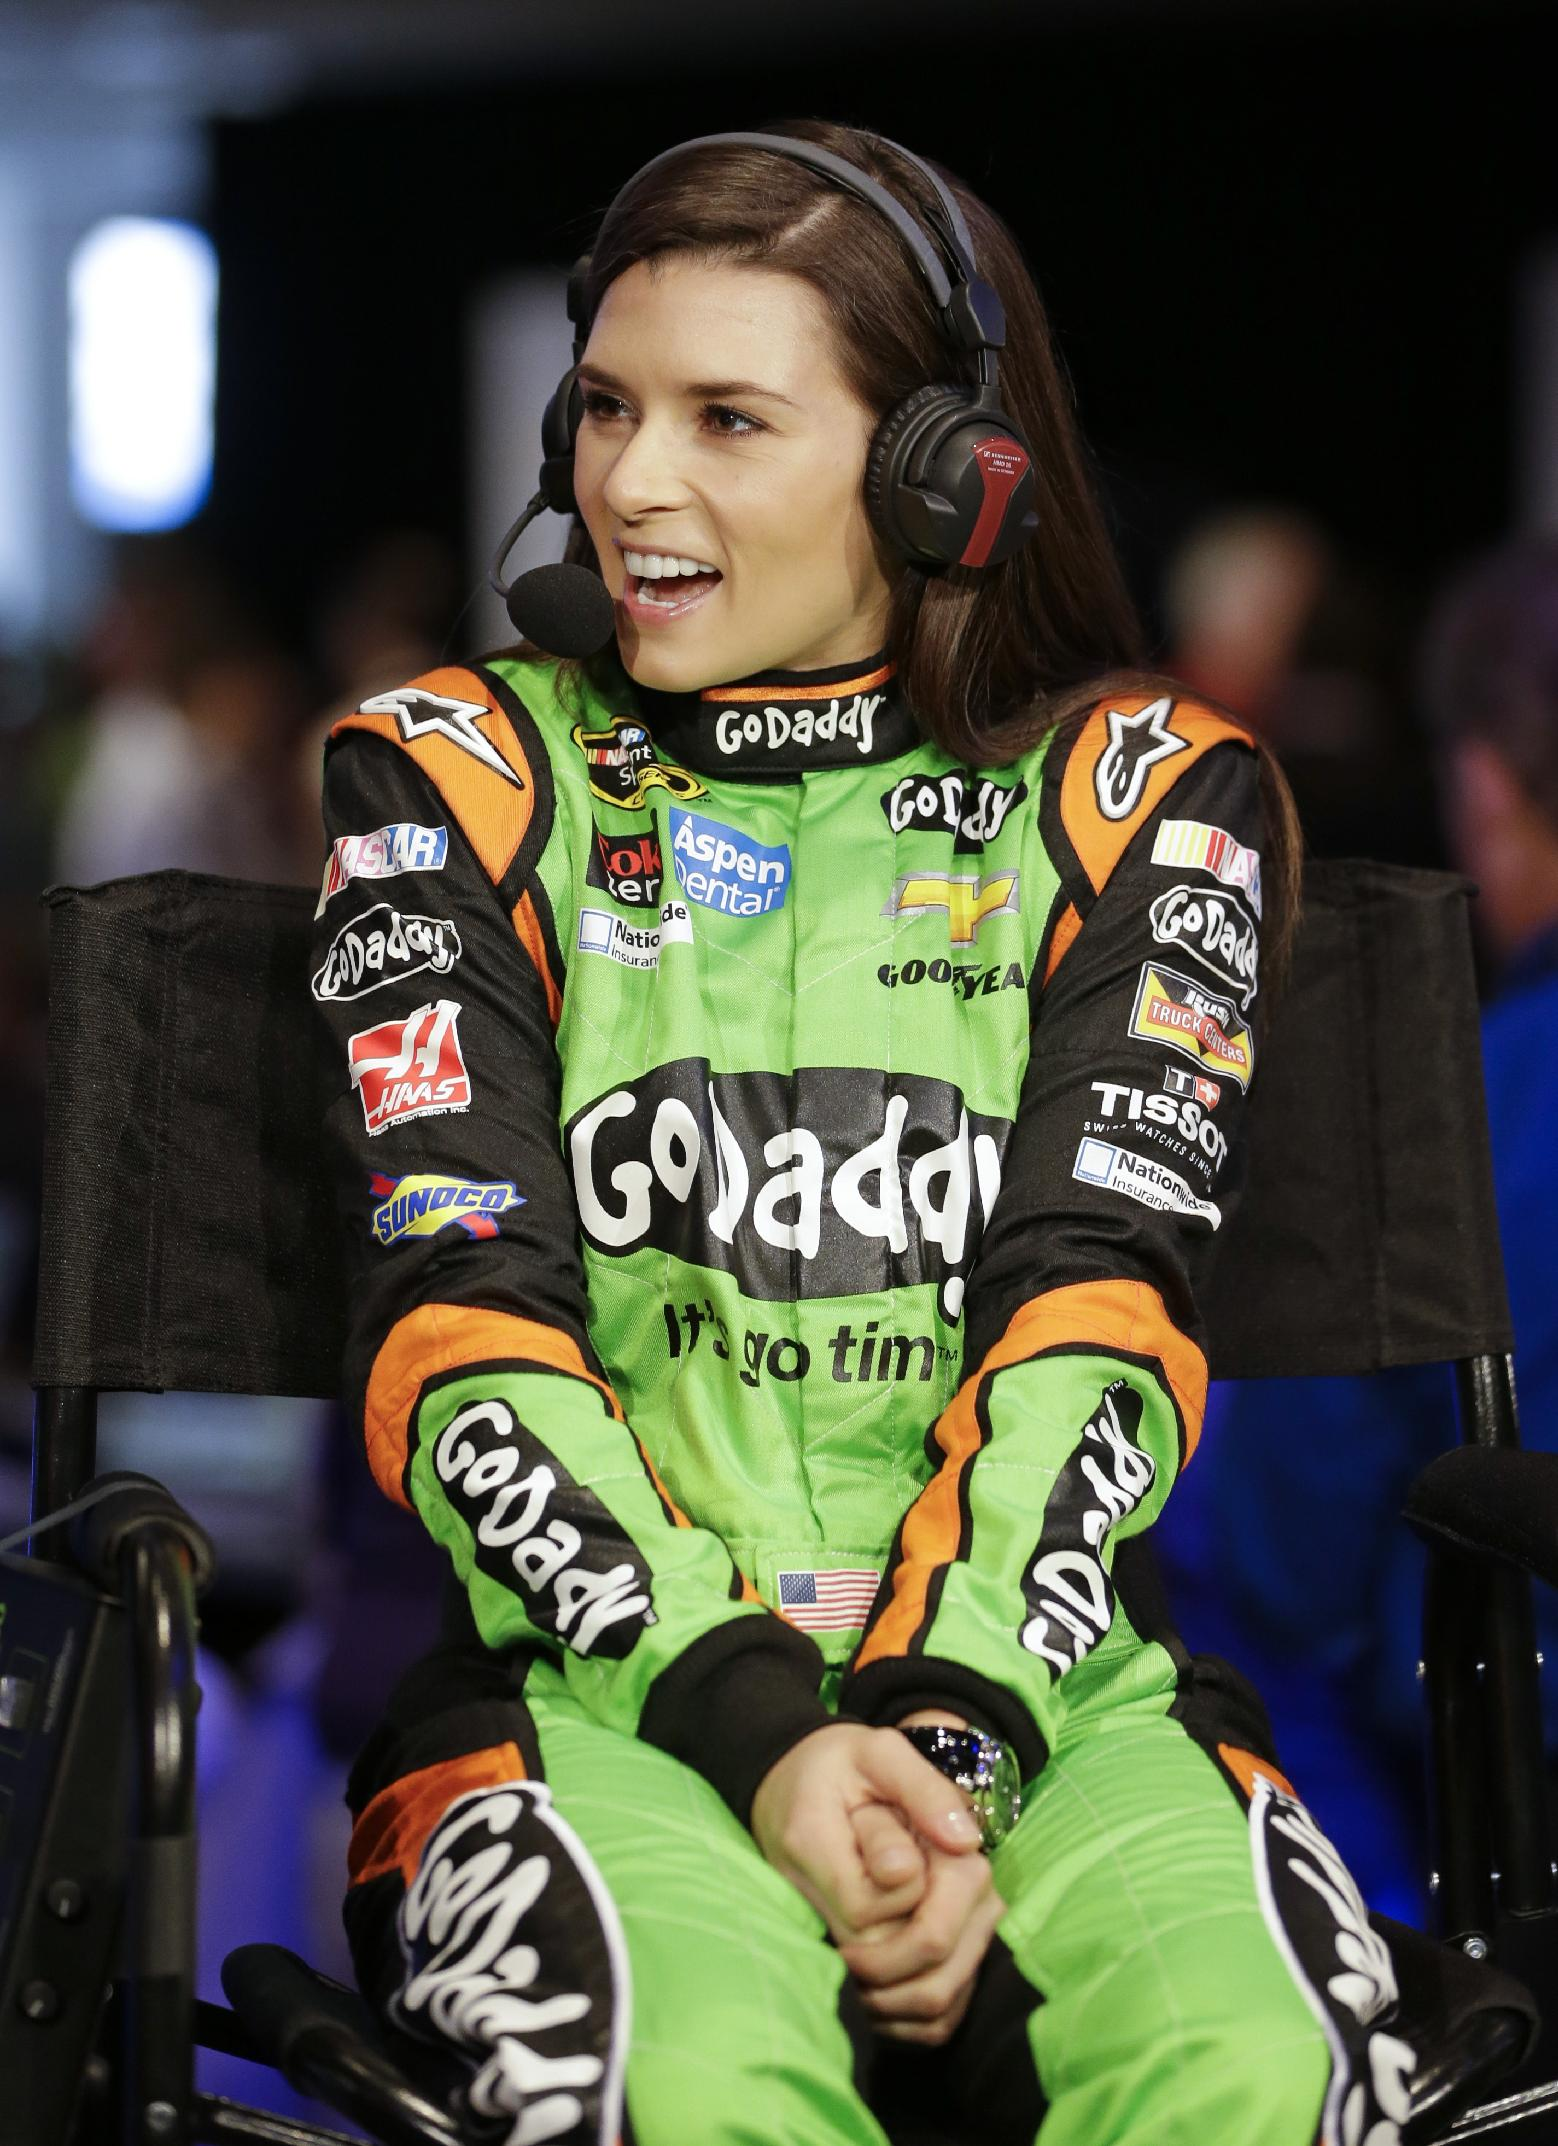 NASCAR's Patrick reacts to Petty's criticism